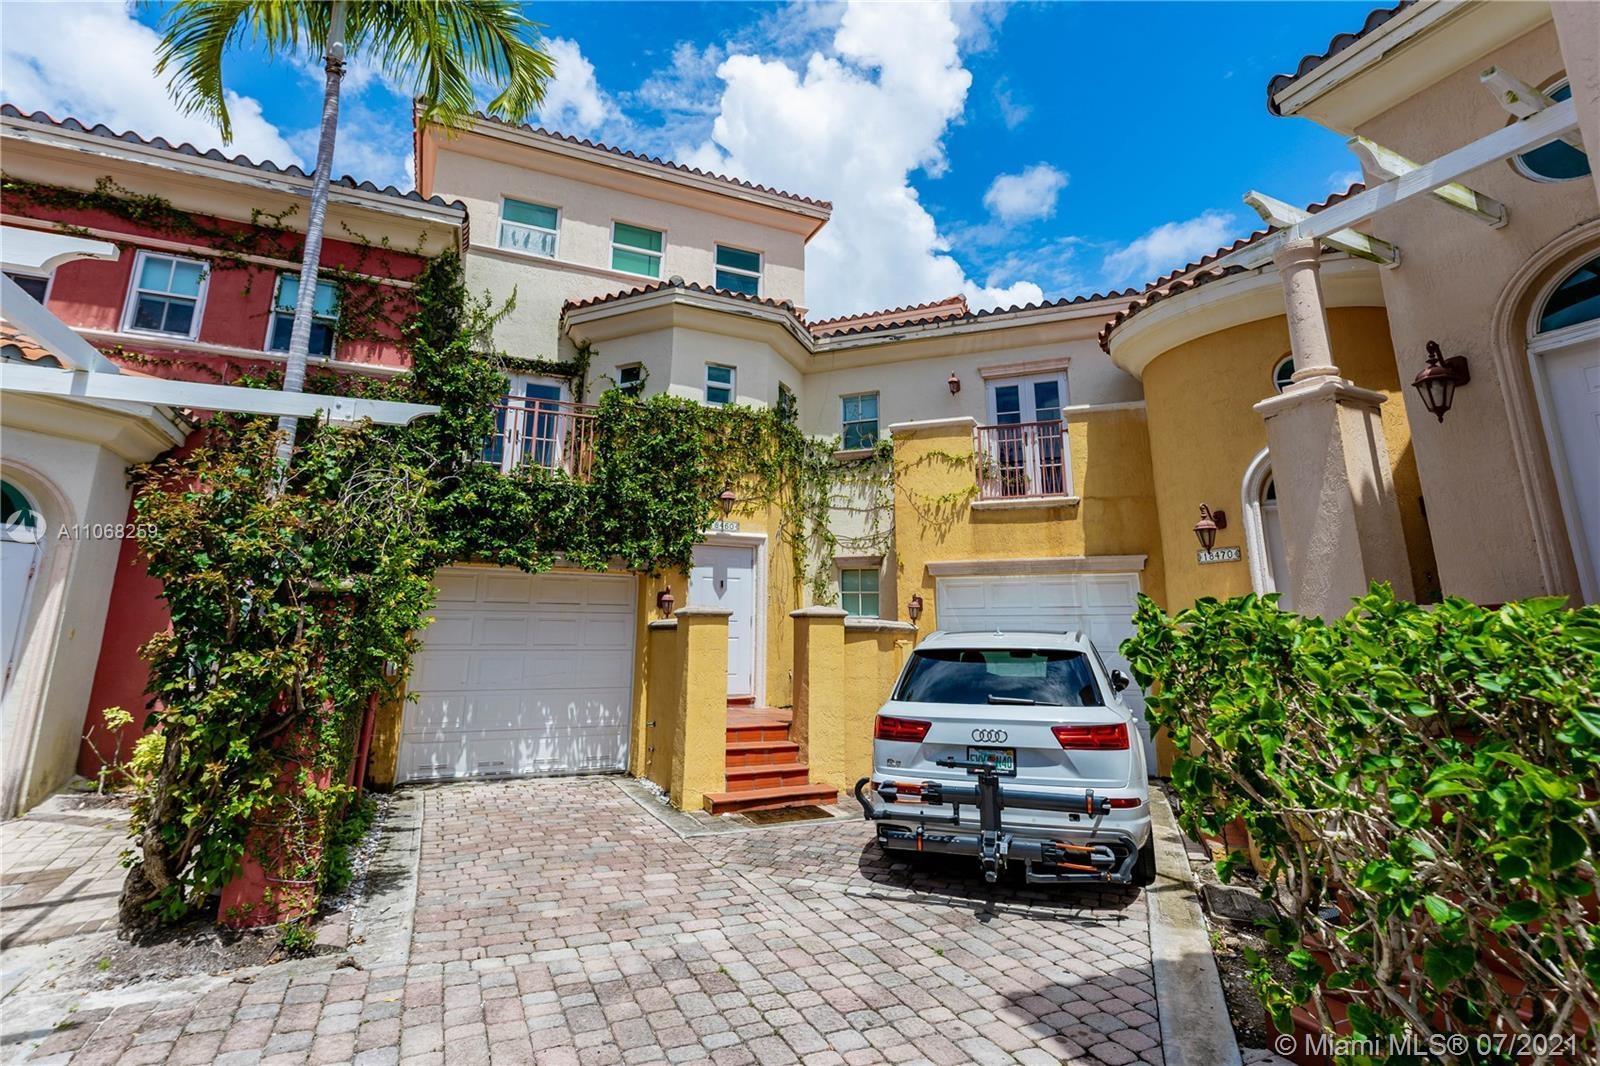 Miami Riches presents completely remodeled 5bed/3.5bath three level townhouse in Aventura Bay. Medit